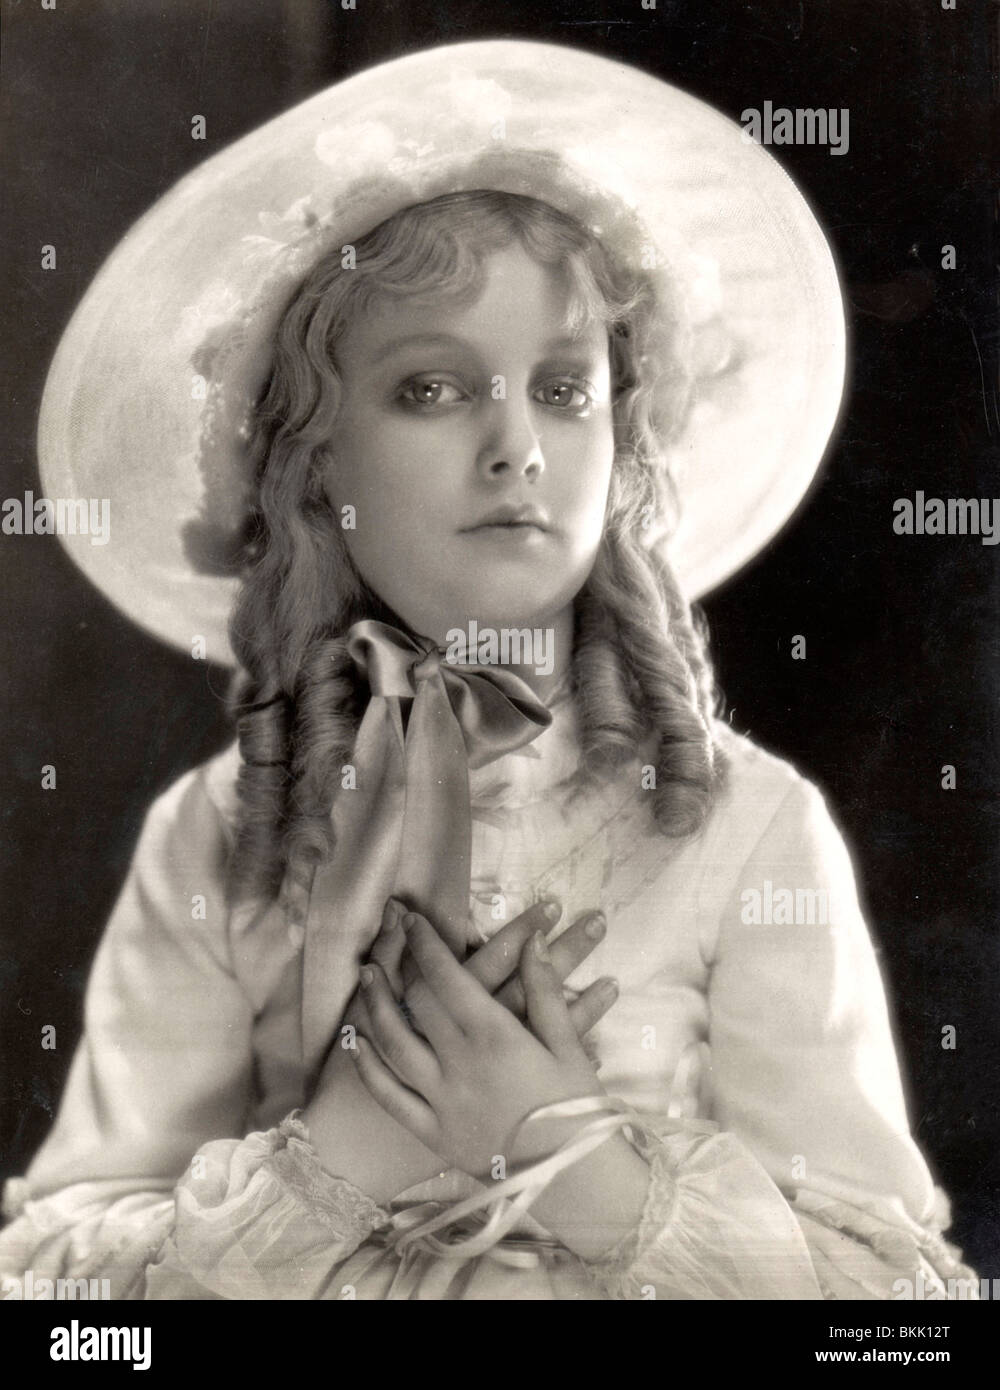 Image result for virginia grey actress child